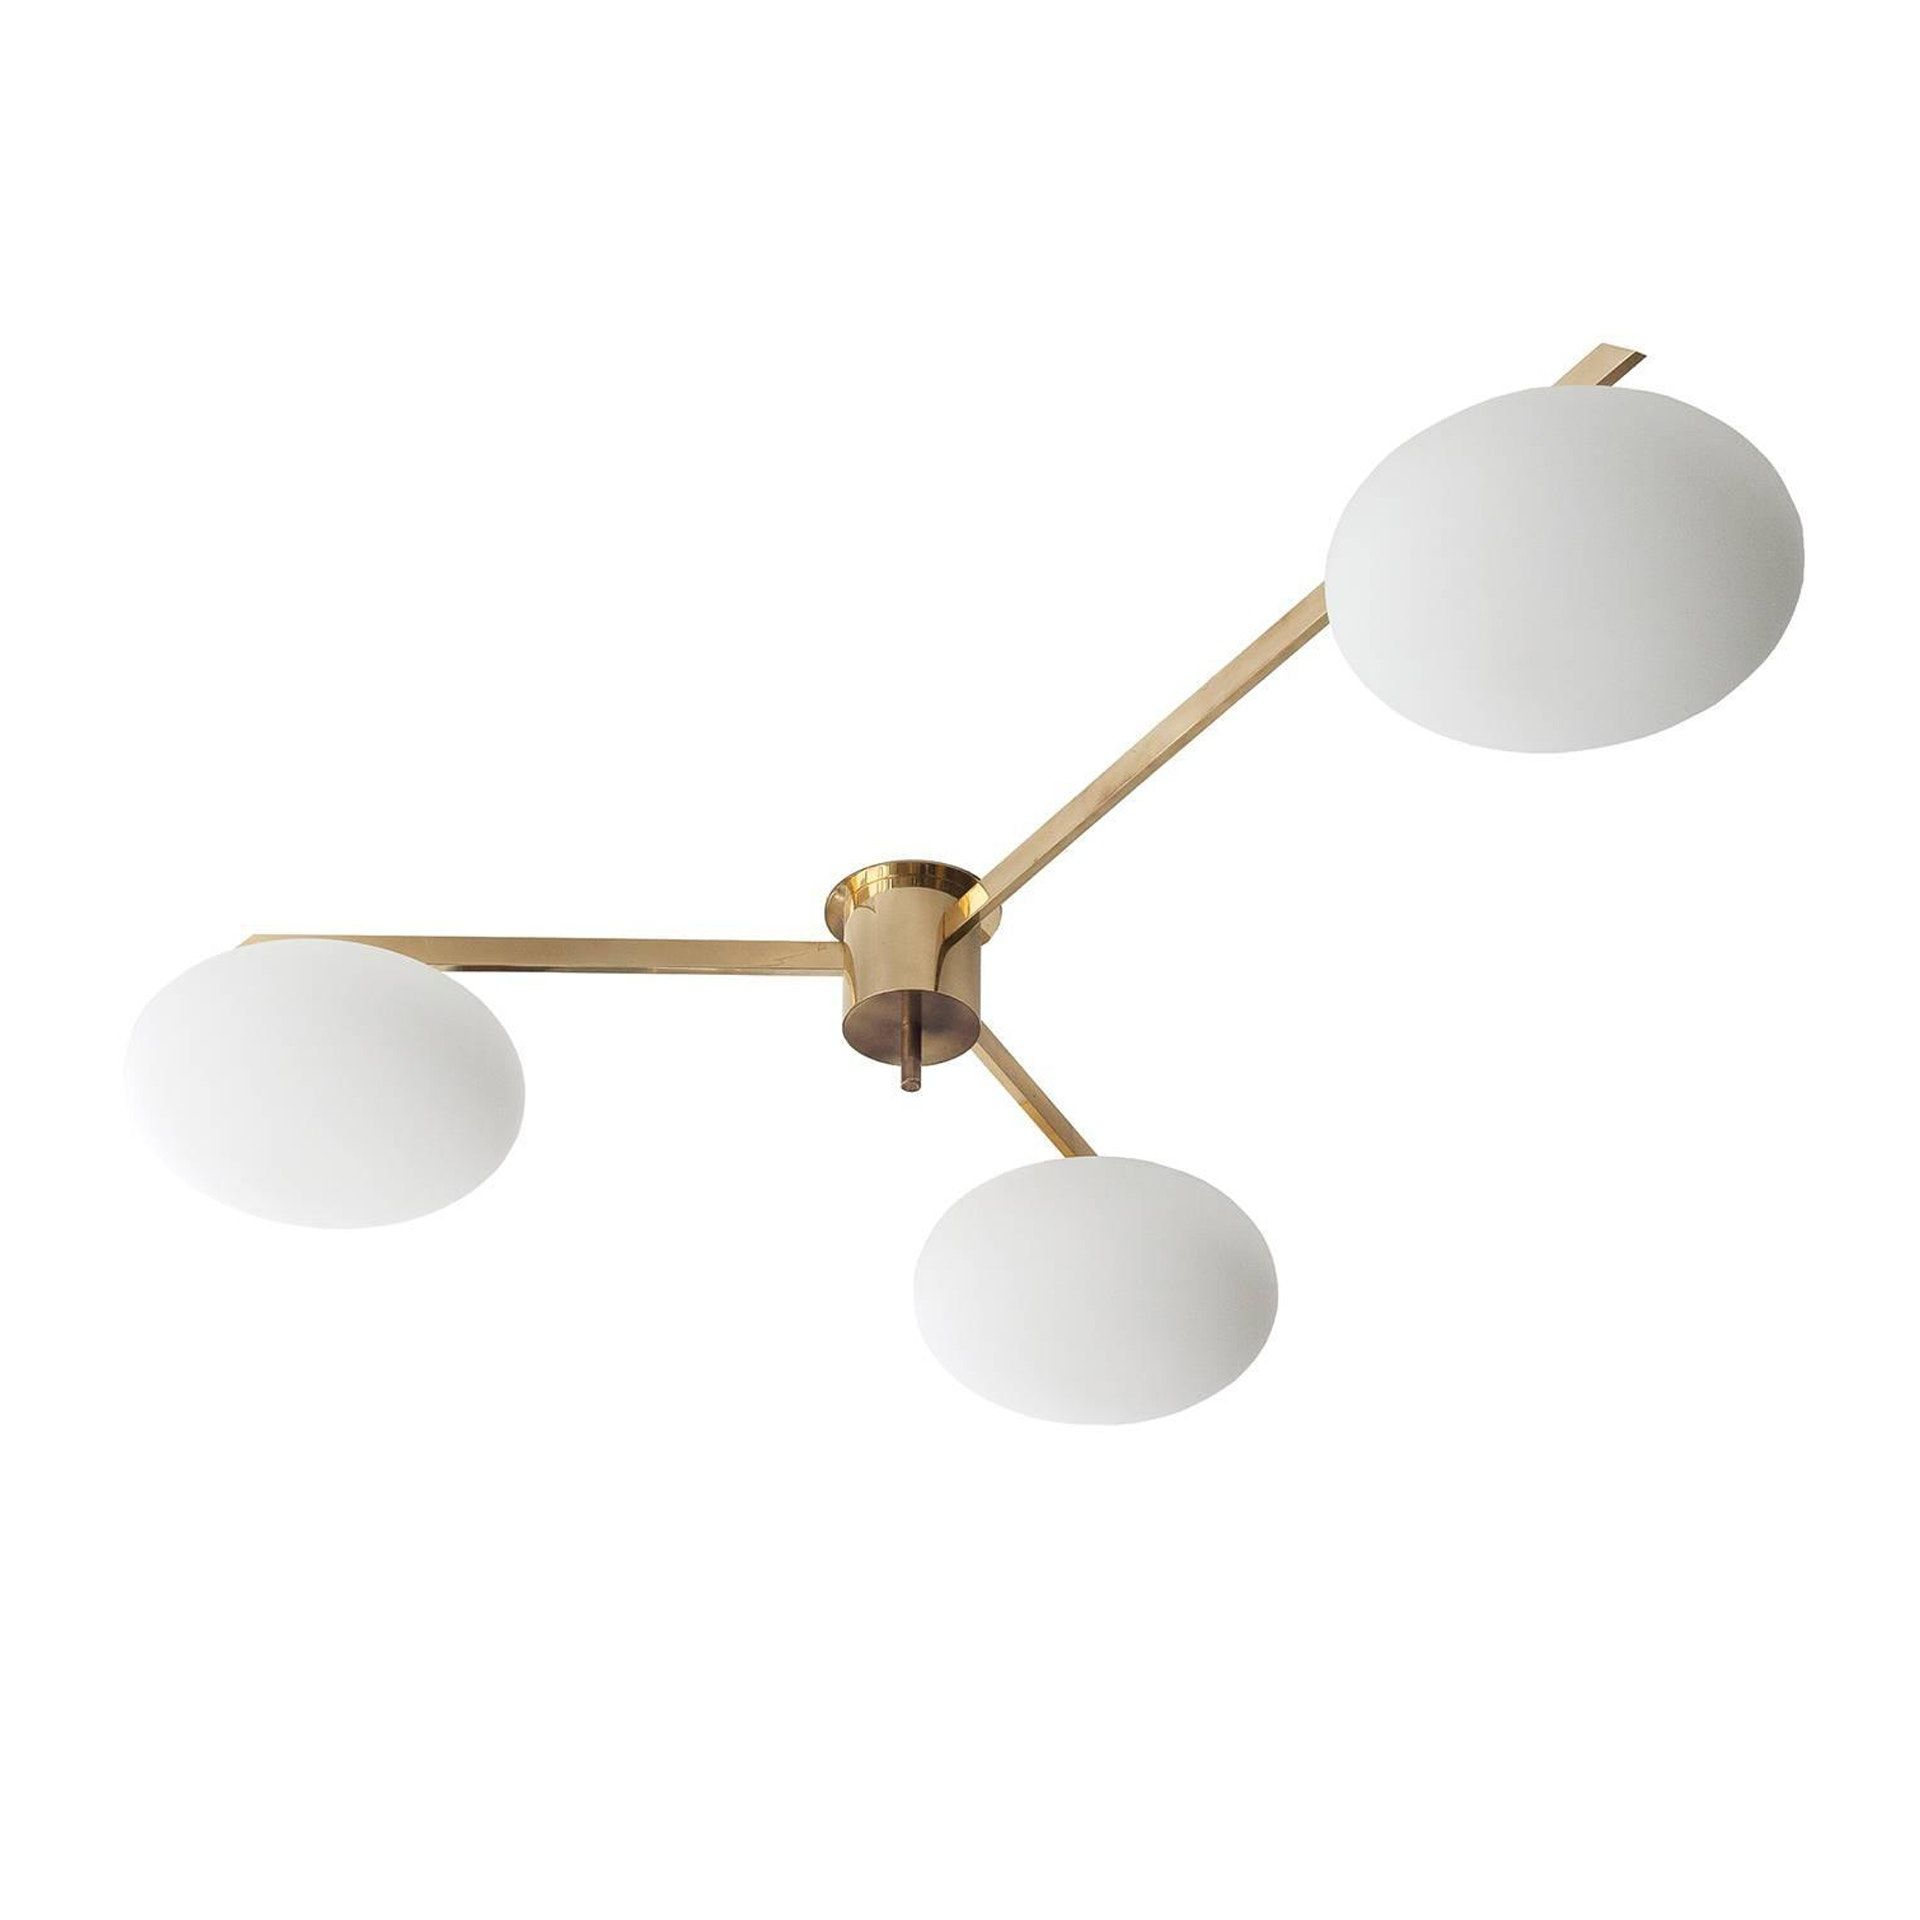 Buy Lelli 3 Arm Flush Mount By Carlyle Collective Made To Order Designer Lighting From Transitional Decor Transitional Dining Room Decor Modern Flush Mount